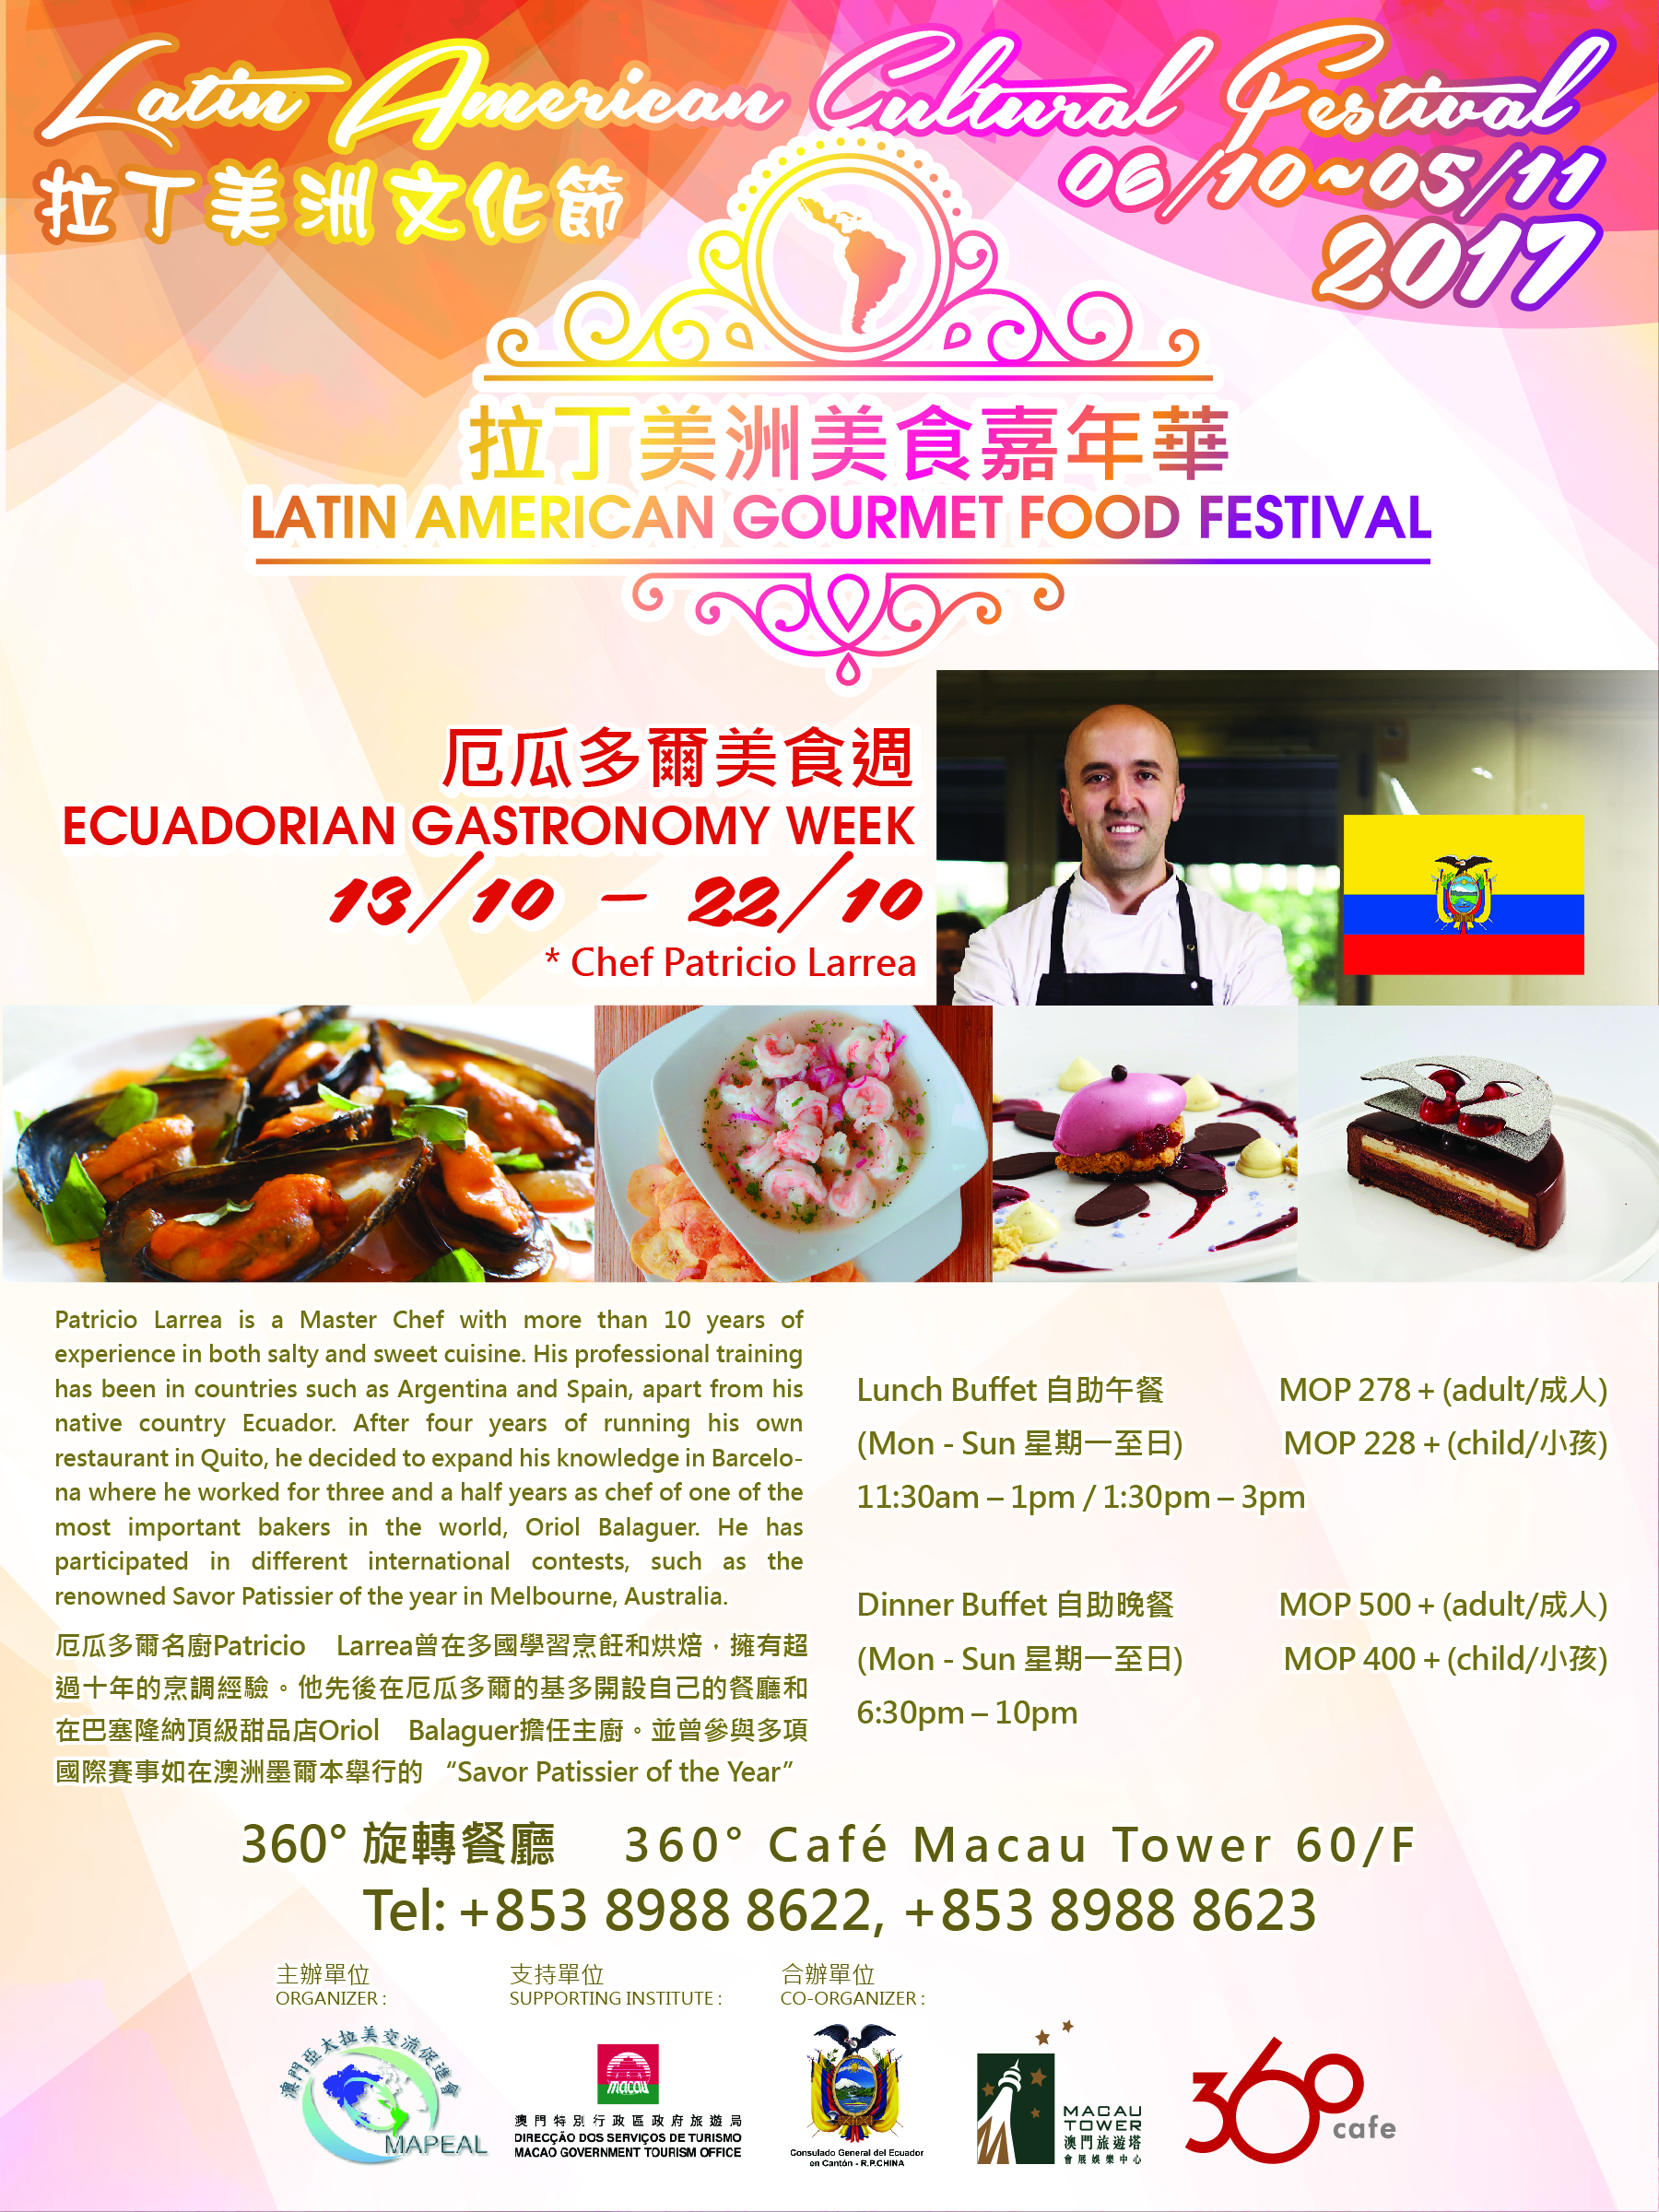 5. Food Festival Ecuador chef AD